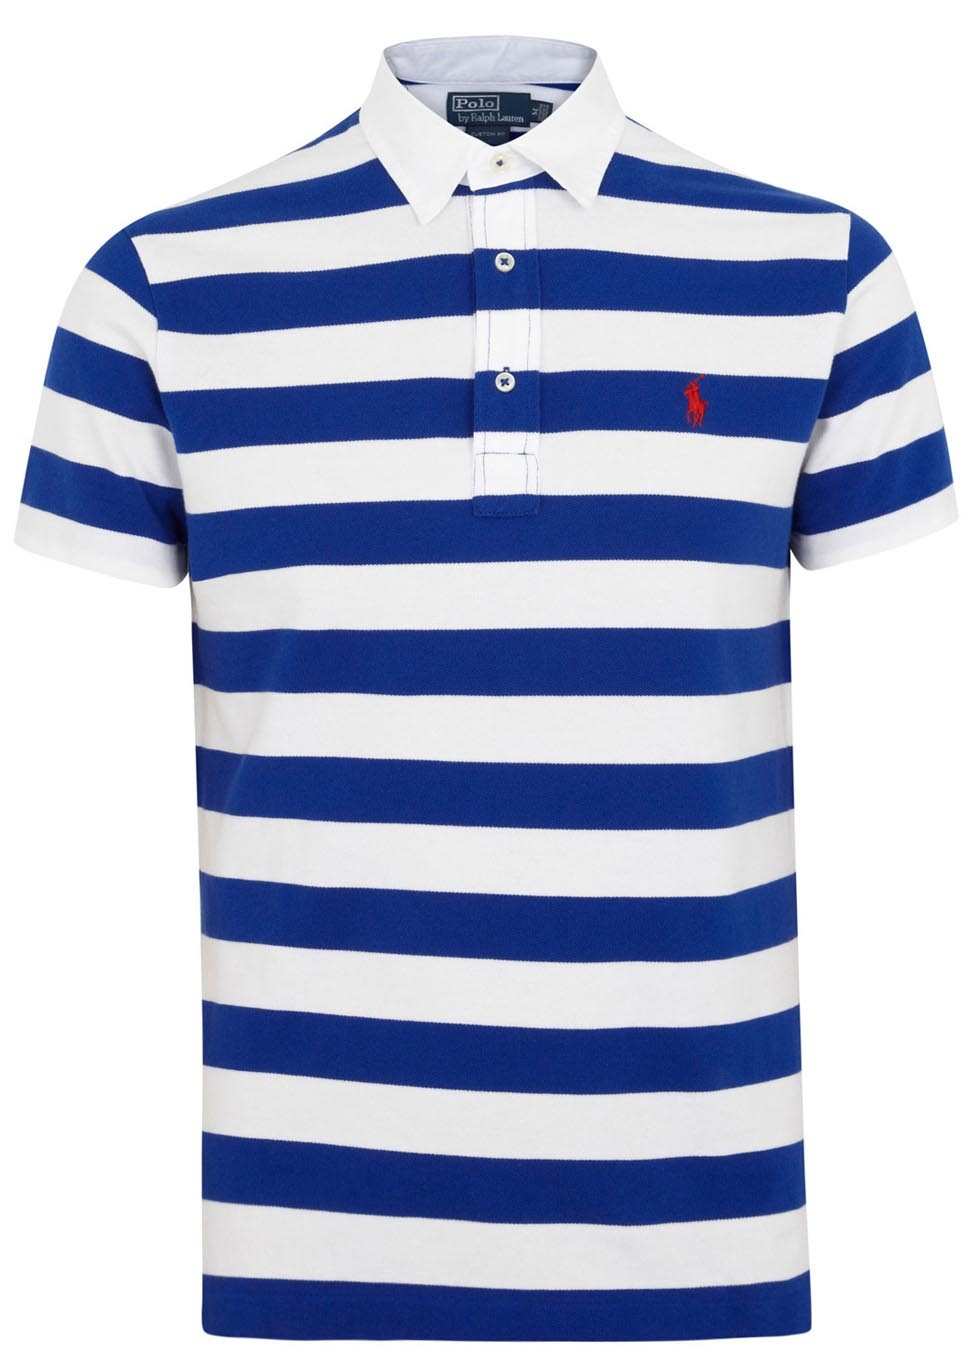 b99bf1092fe37 ... best price polo ralph lauren blue and white striped piqué cotton polo  shirt in 1d257 90064